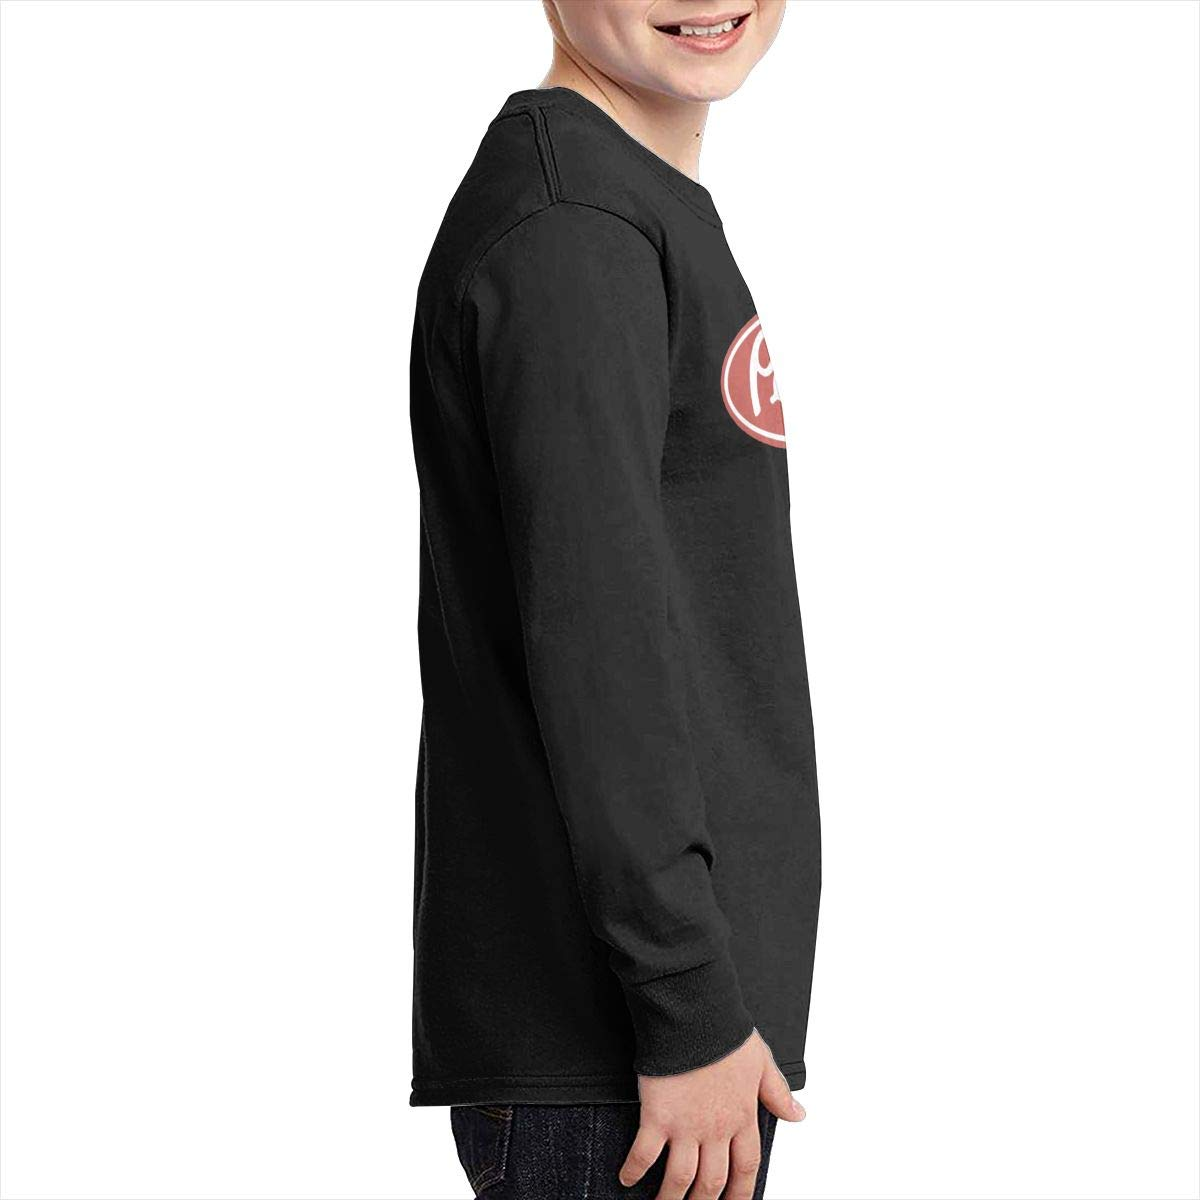 PoihASAZz Peterbilt Trucks Youth Long Sleeve 100/% Cotton T-Shirts